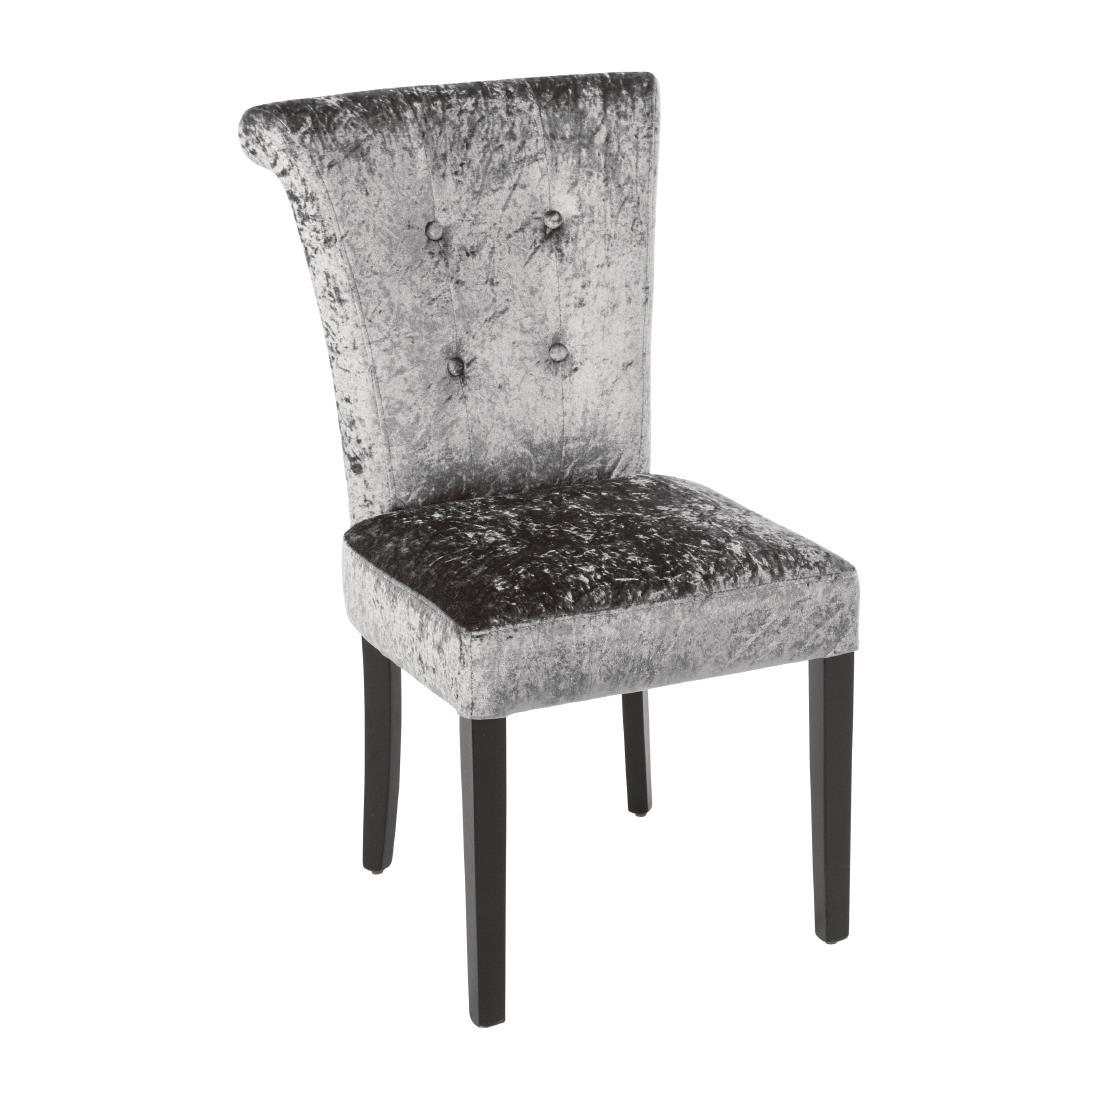 Studded Dining Chairs Bolero Olive Grey Crushed Velvet Dining Chair Pack Of 2